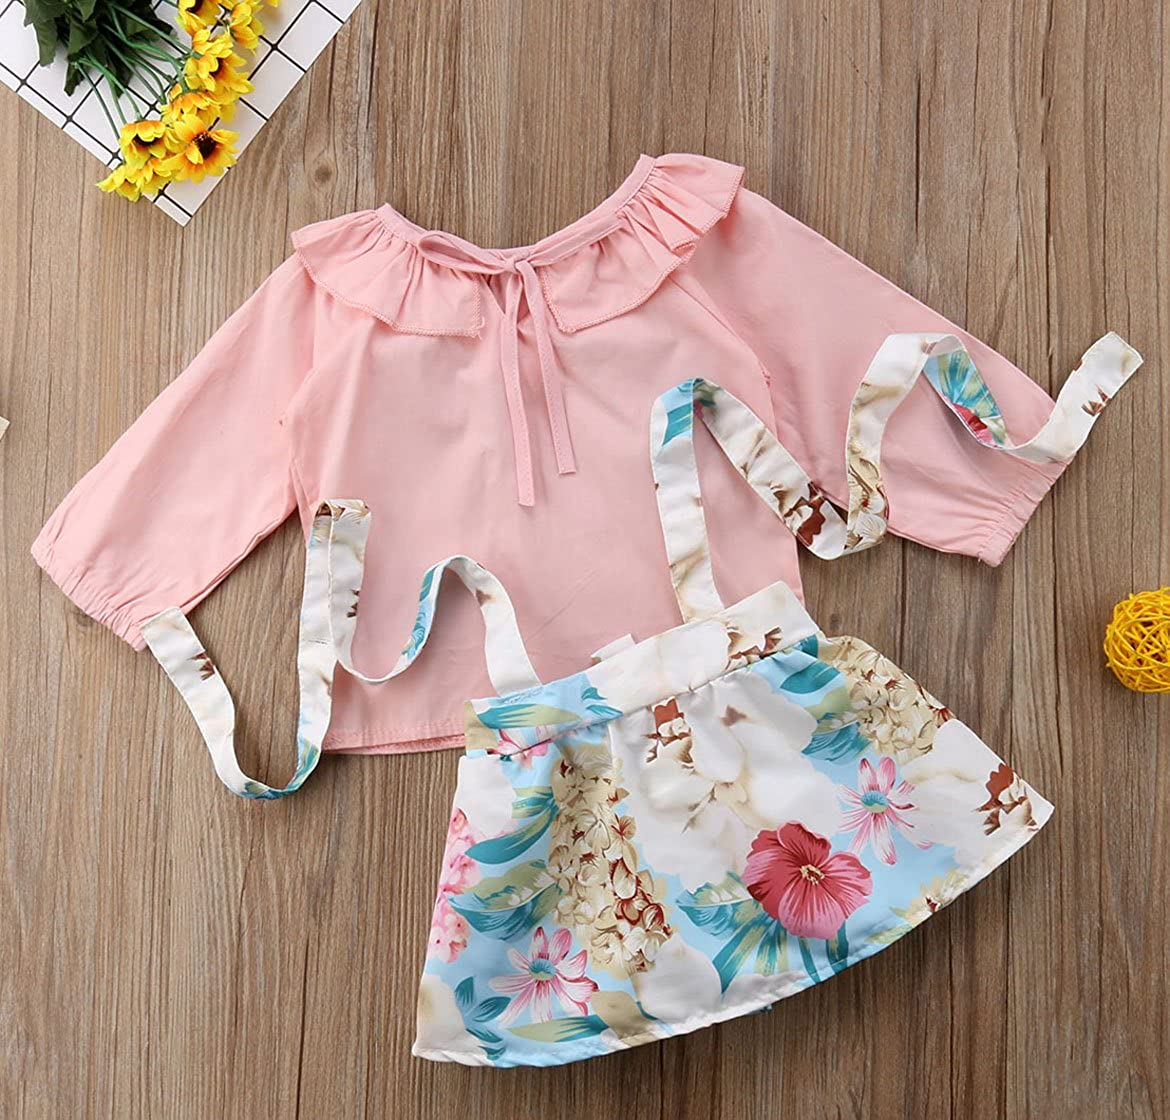 rechange 2Pcs Baby Girl Cute Long Sleeve Pink Top Floral Suspender Skirt Overalls Outfit Set Infant Summer Clothes